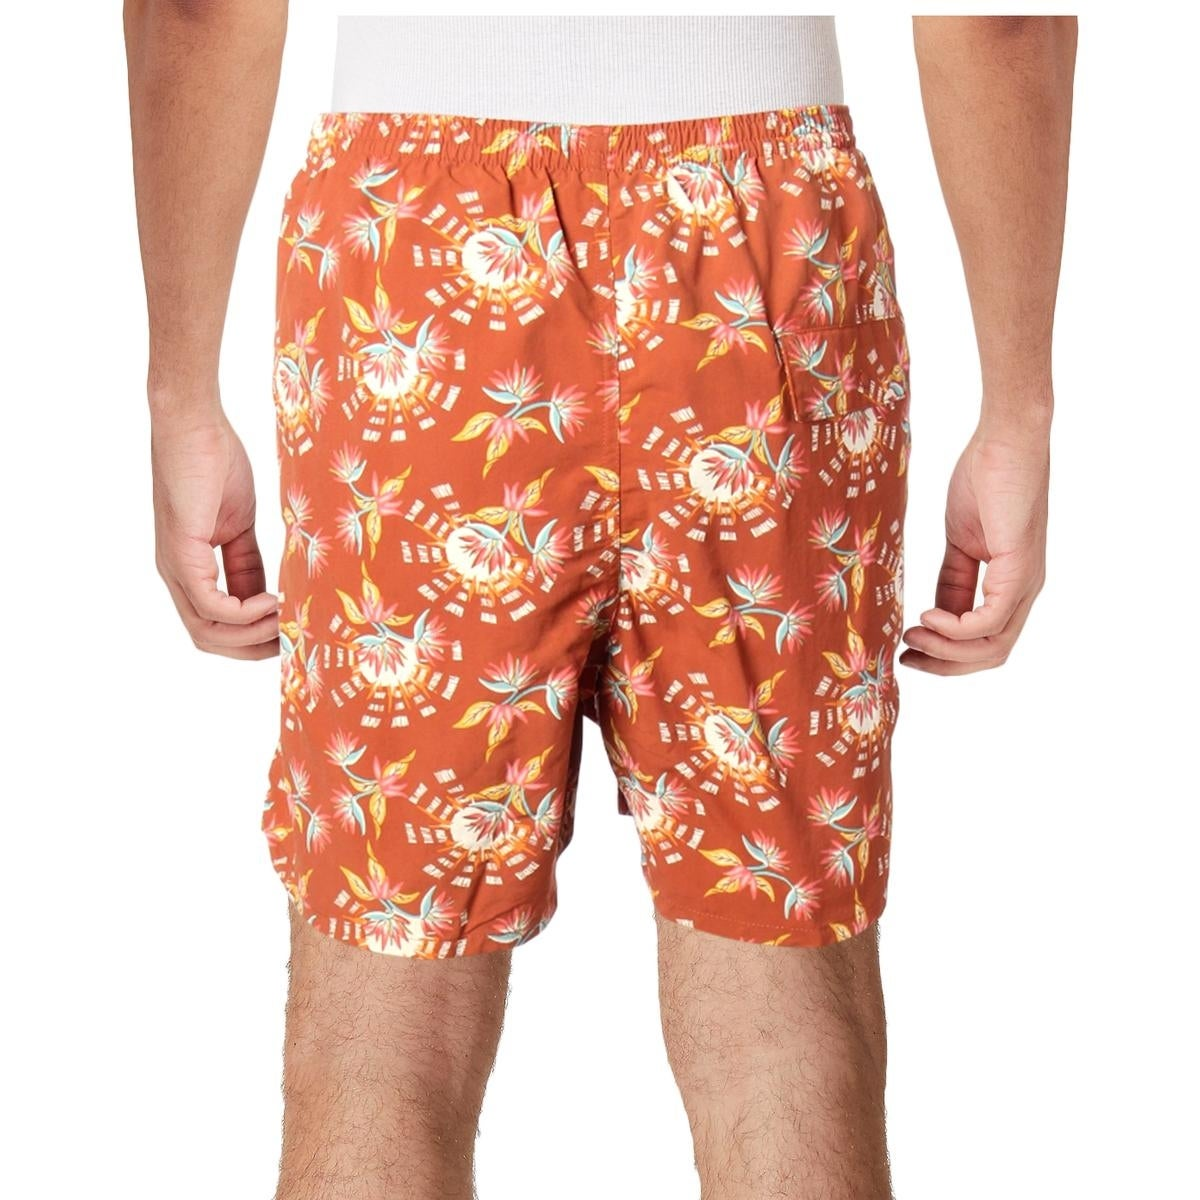 80f16ccd04 Shop Patagonia Mens Printed Beach Swim Trunks - Free Shipping On Orders  Over $45 - Overstock - 26456059